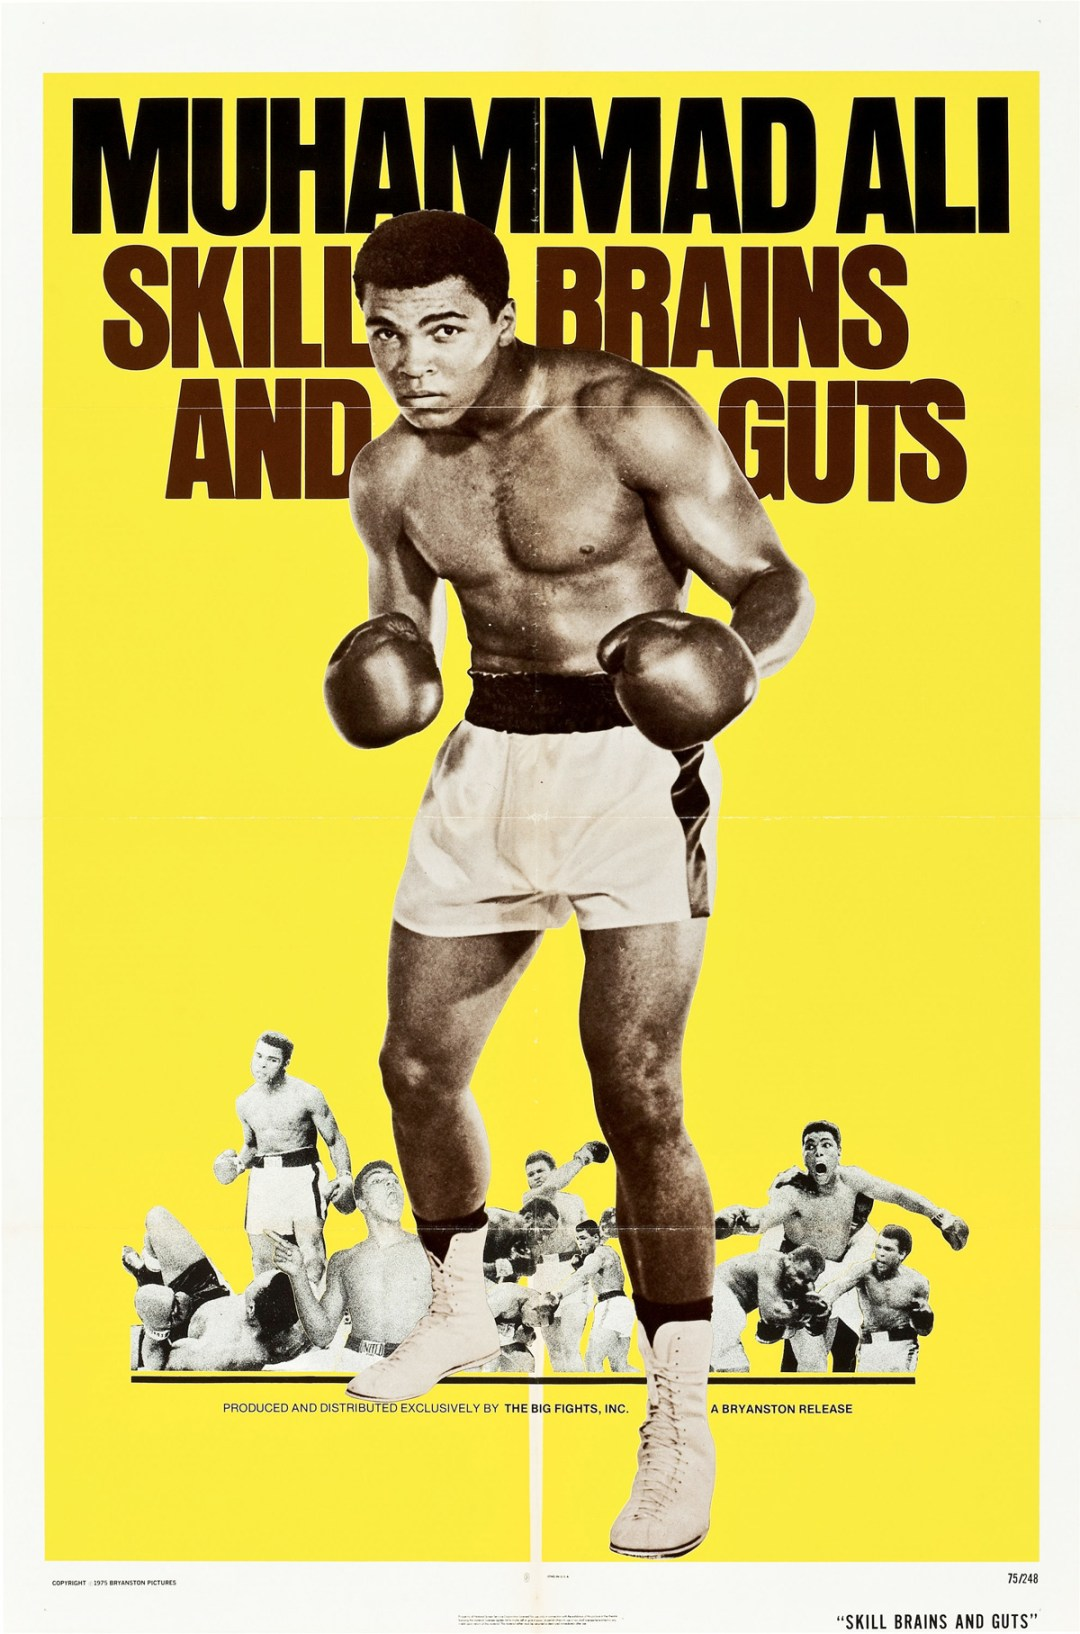 "Skill, Brains and Guts ""Muhammad Ali a.k.a. Cassius Clay"" :: 1975"